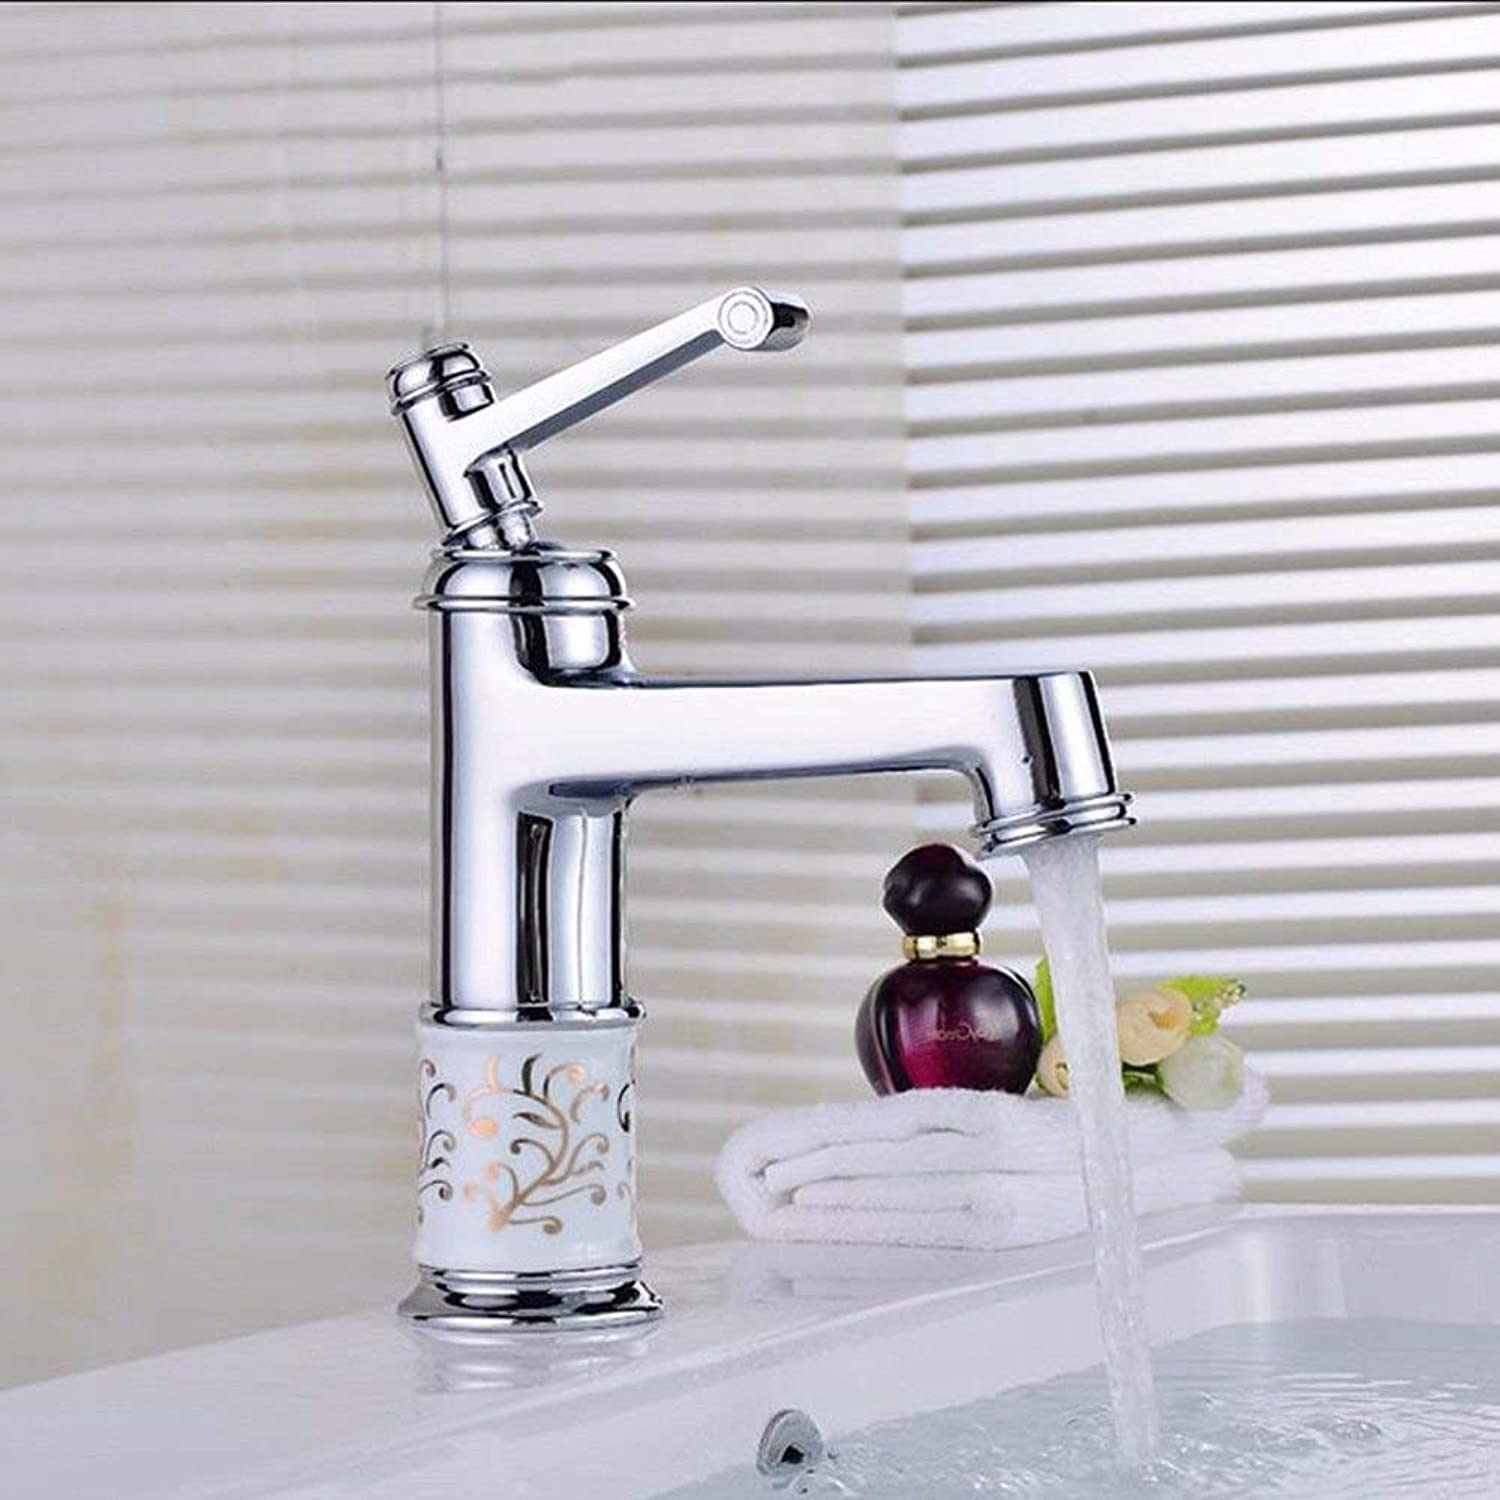 Oudan Basin Mixer Tap Bathroom Sink Faucet gold hot and cold full copper basin faucet antique table basin mixer continental lowered basin Washbasin Faucet,H (color   A)